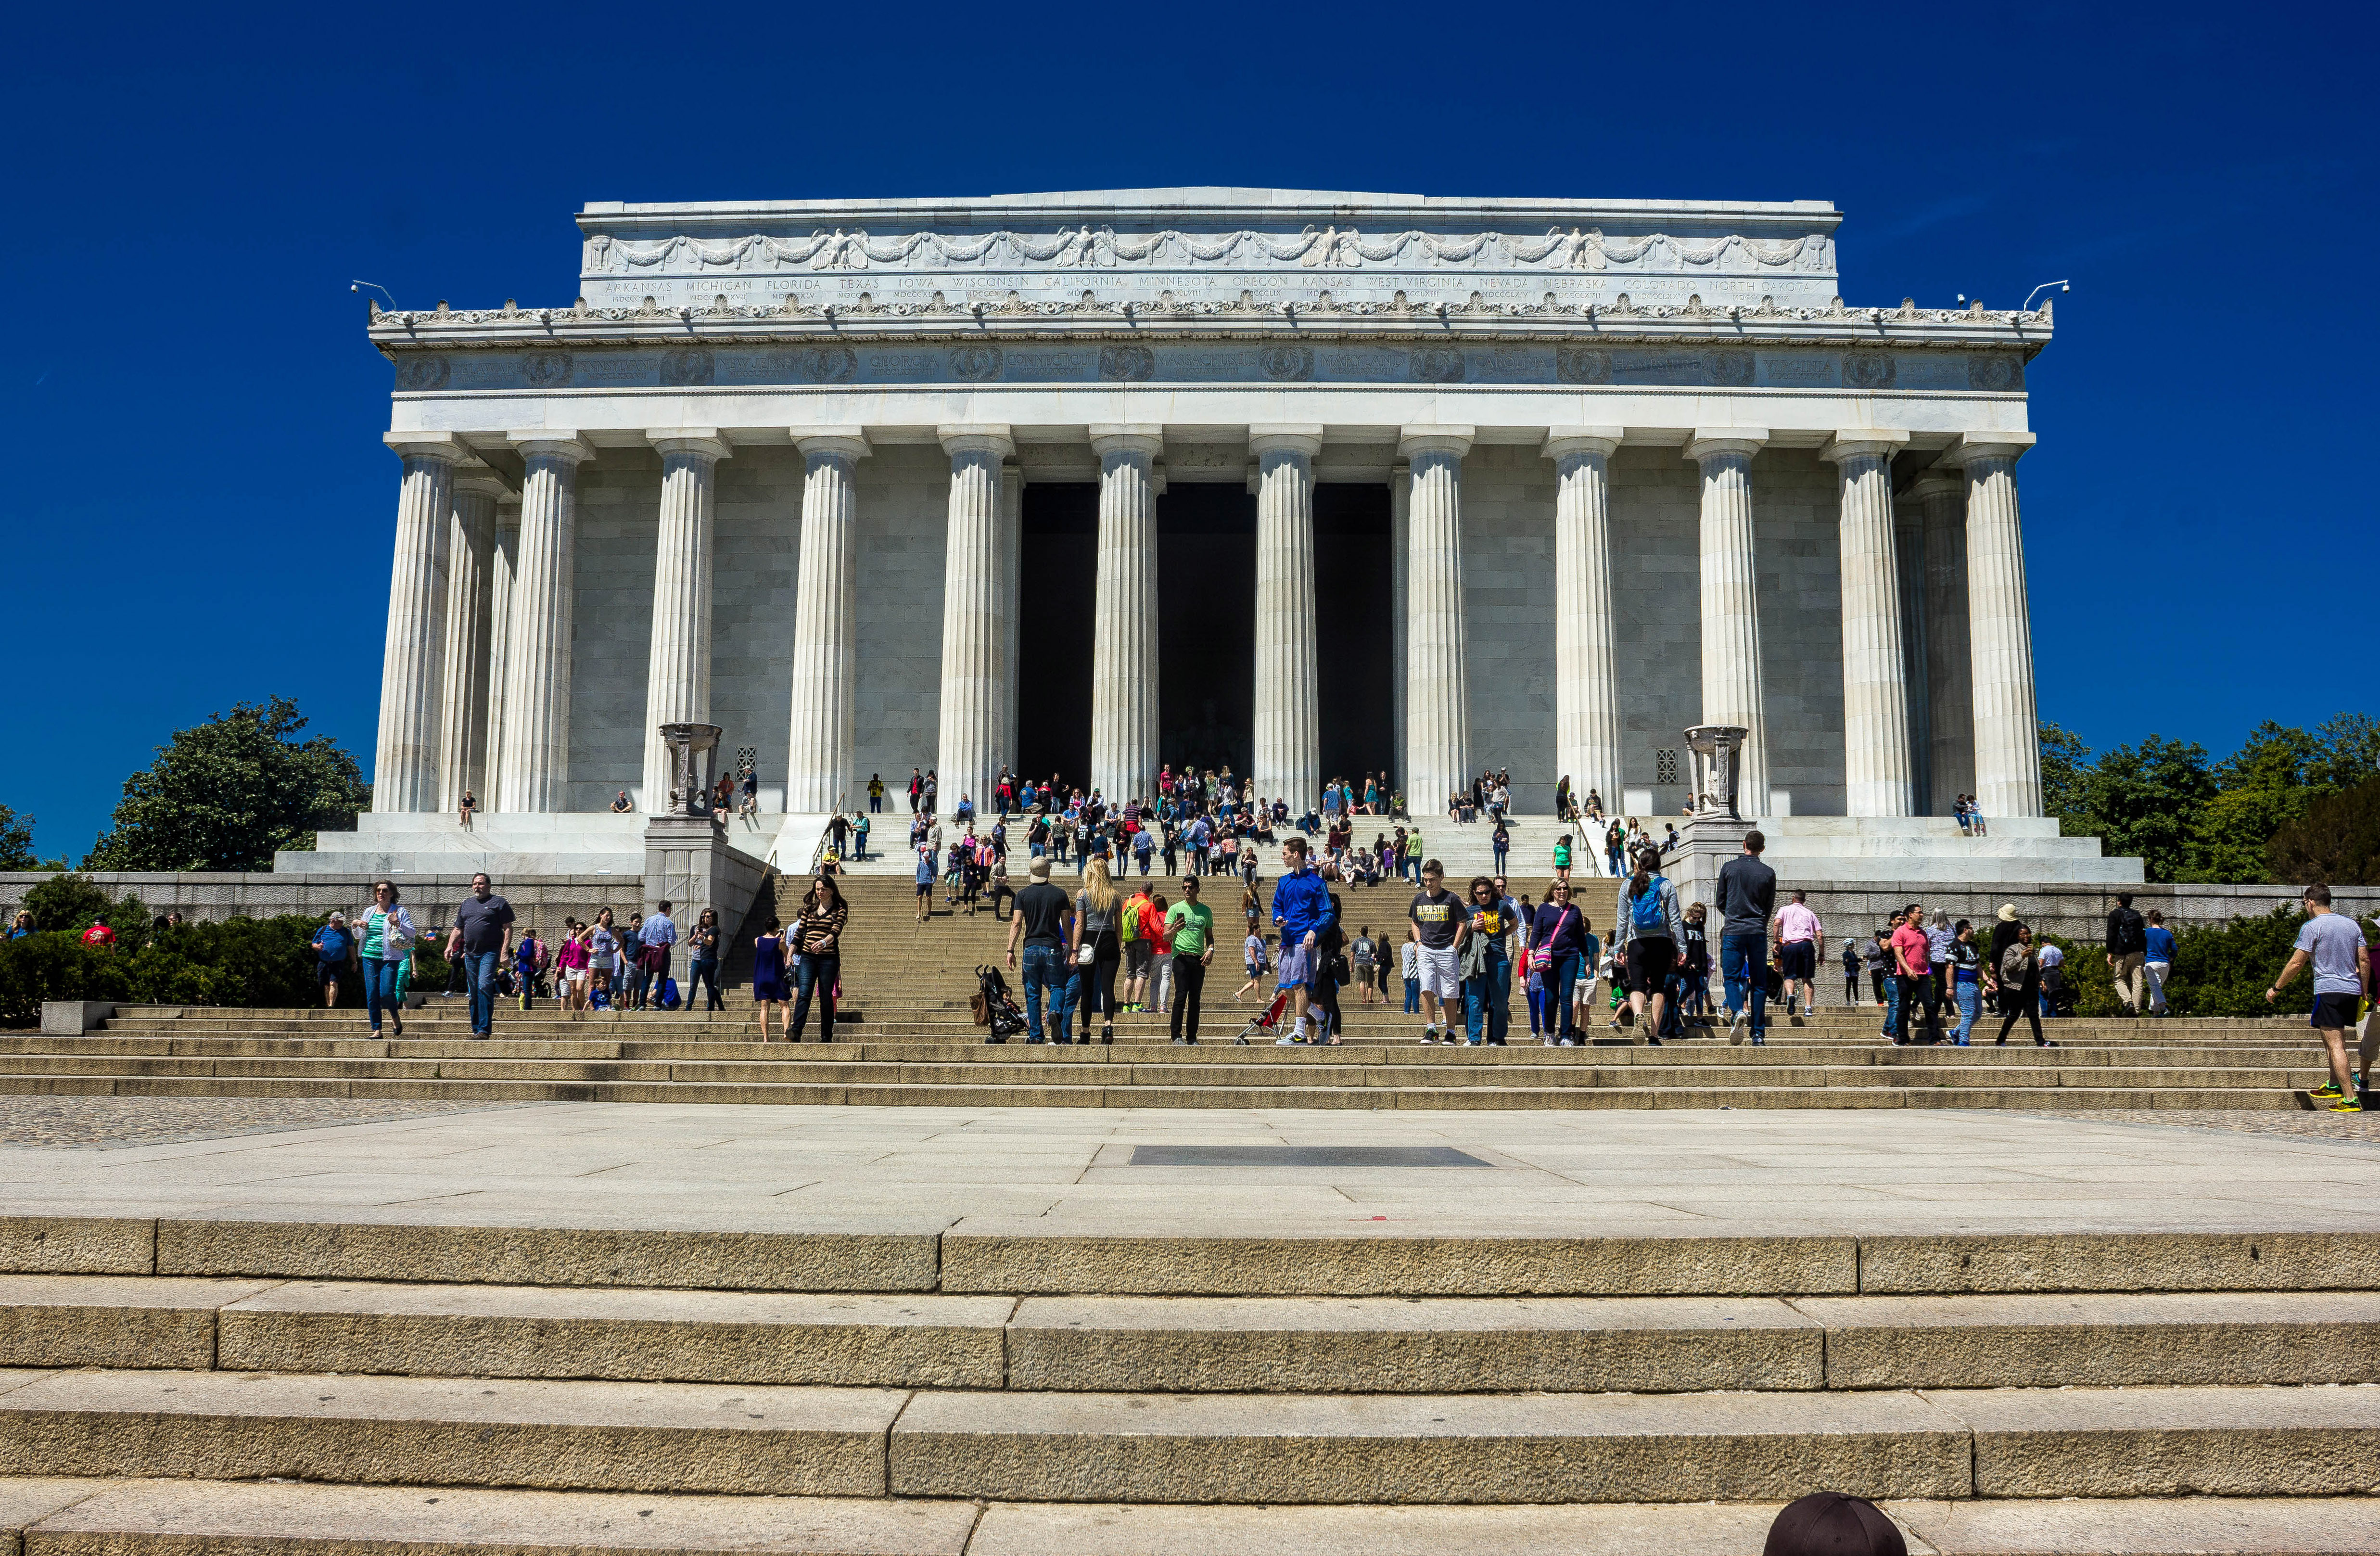 lincoln memorial building clipart. people on the steps of lincoln memorial in washington dc building clipart